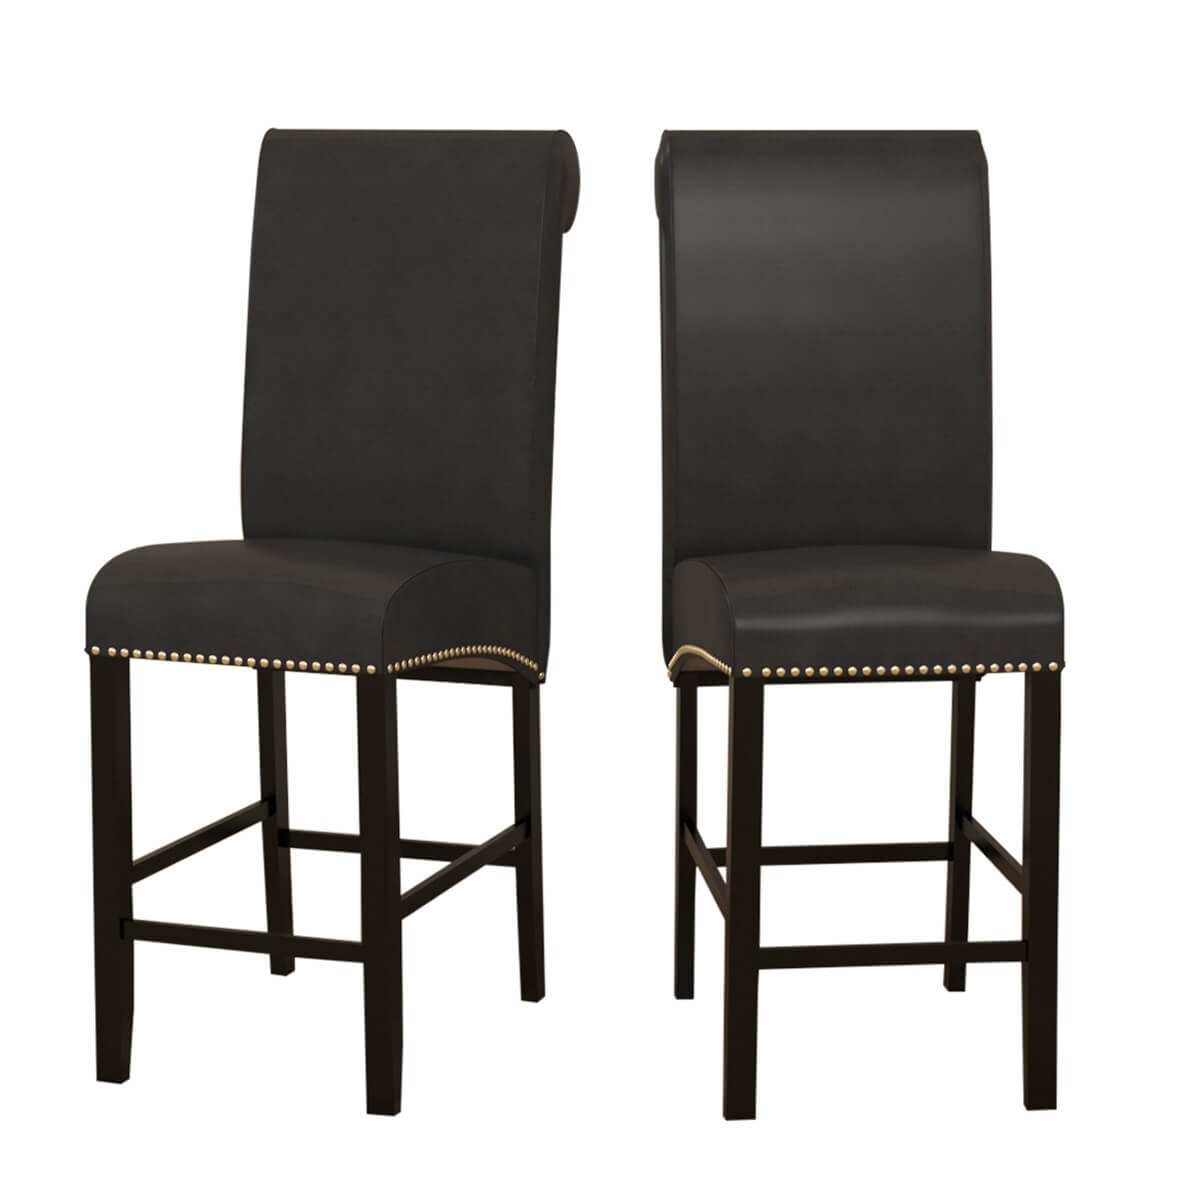 Gresham Contemporary Solid Wood Leather High Back Bar Chair